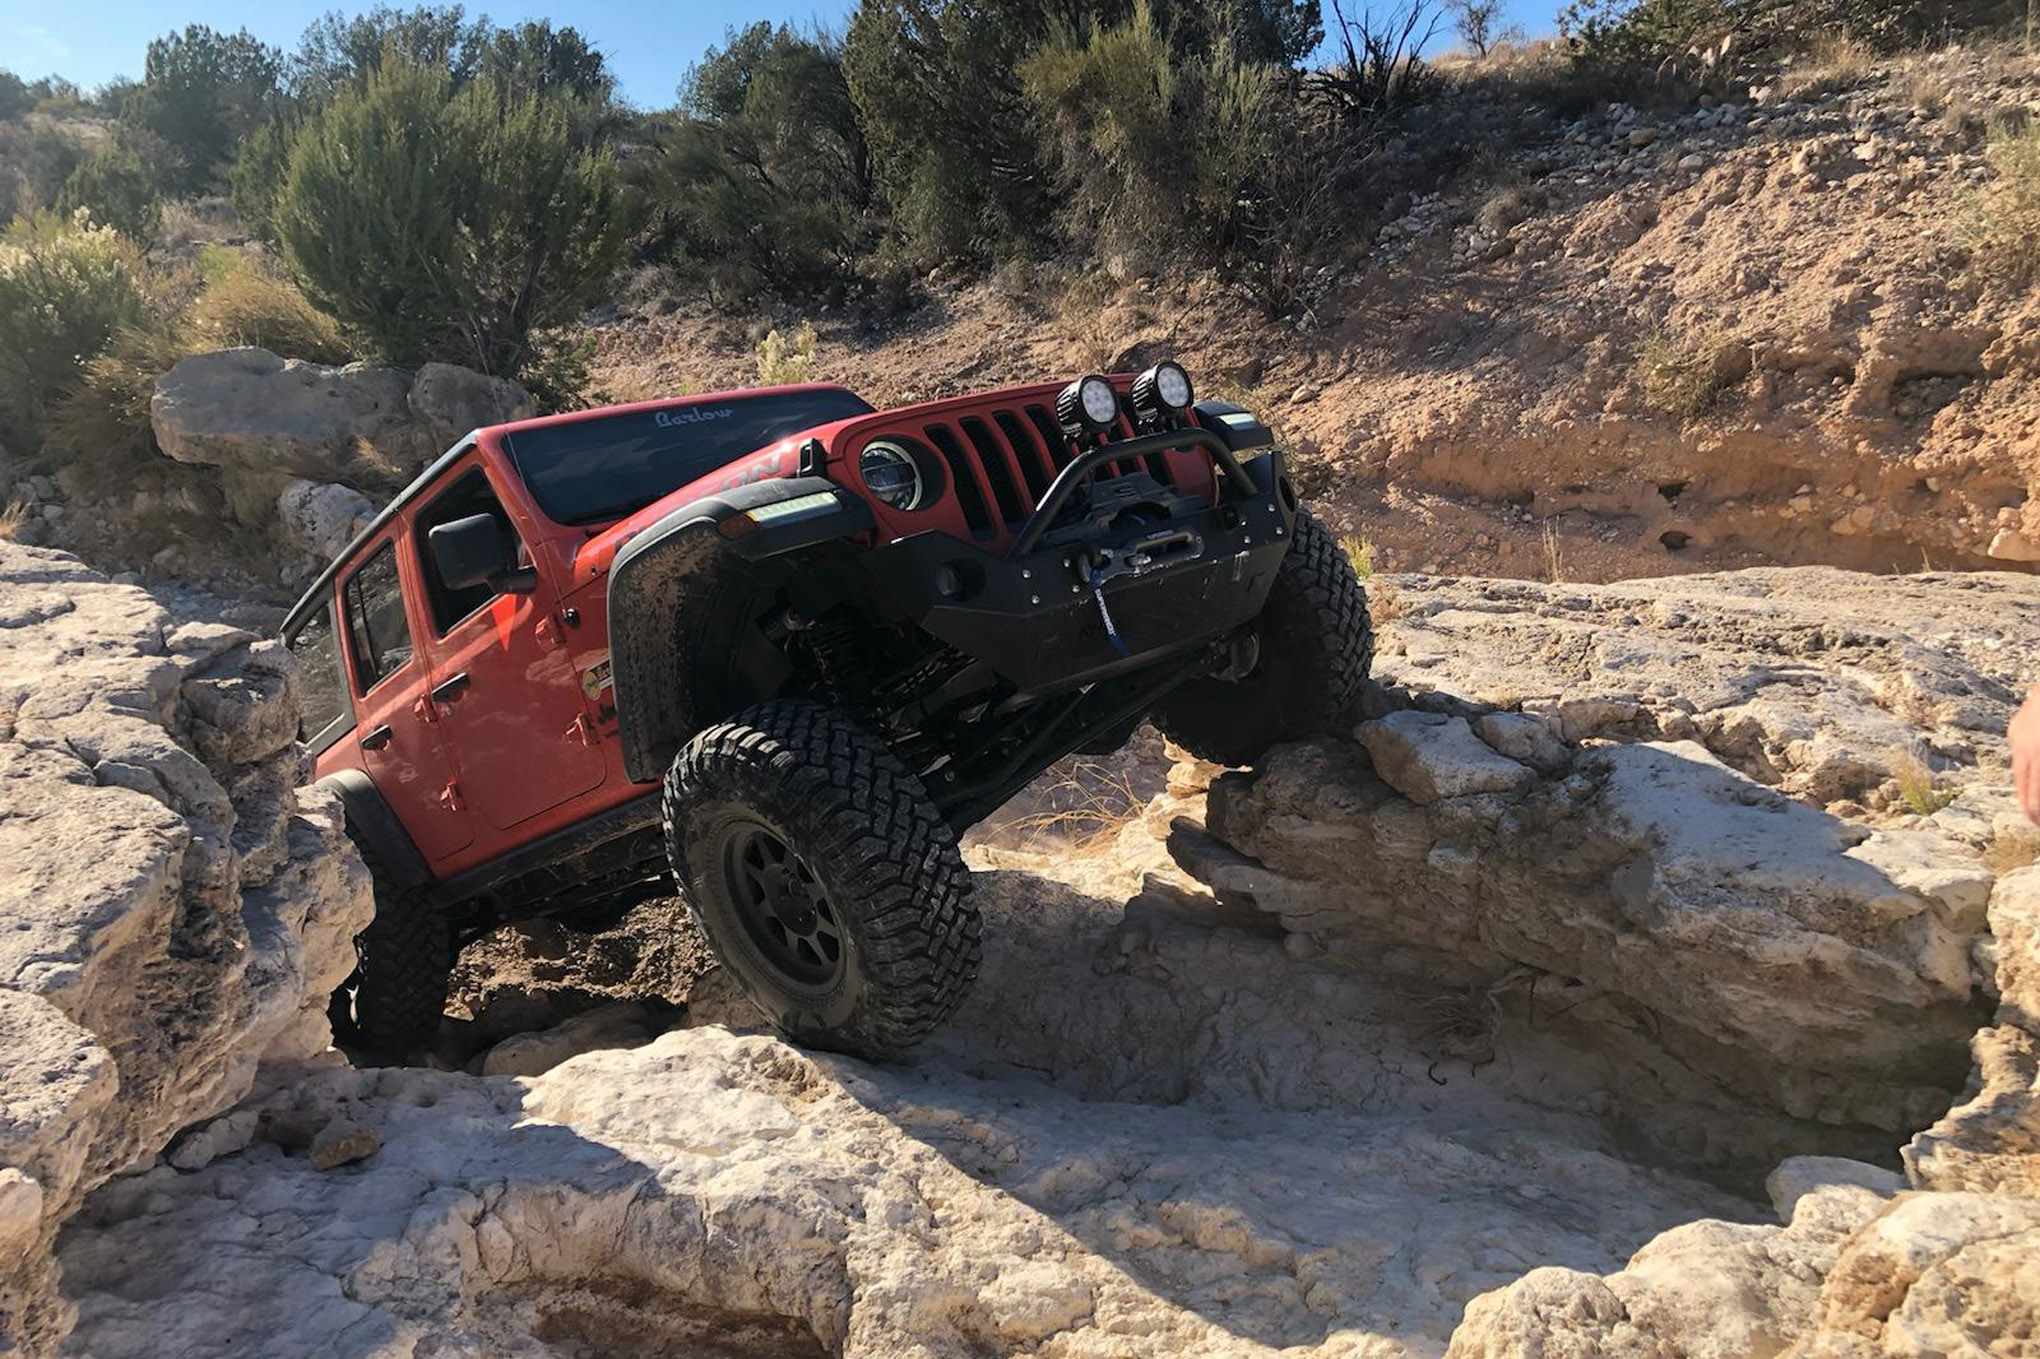 Here are some gratuitous rockcrawling shots. The eTorque provides smooth and steady power, and no turbo lag when climbing over the big rocks. <br> <em>Photo by Sierra Palmer. </em>